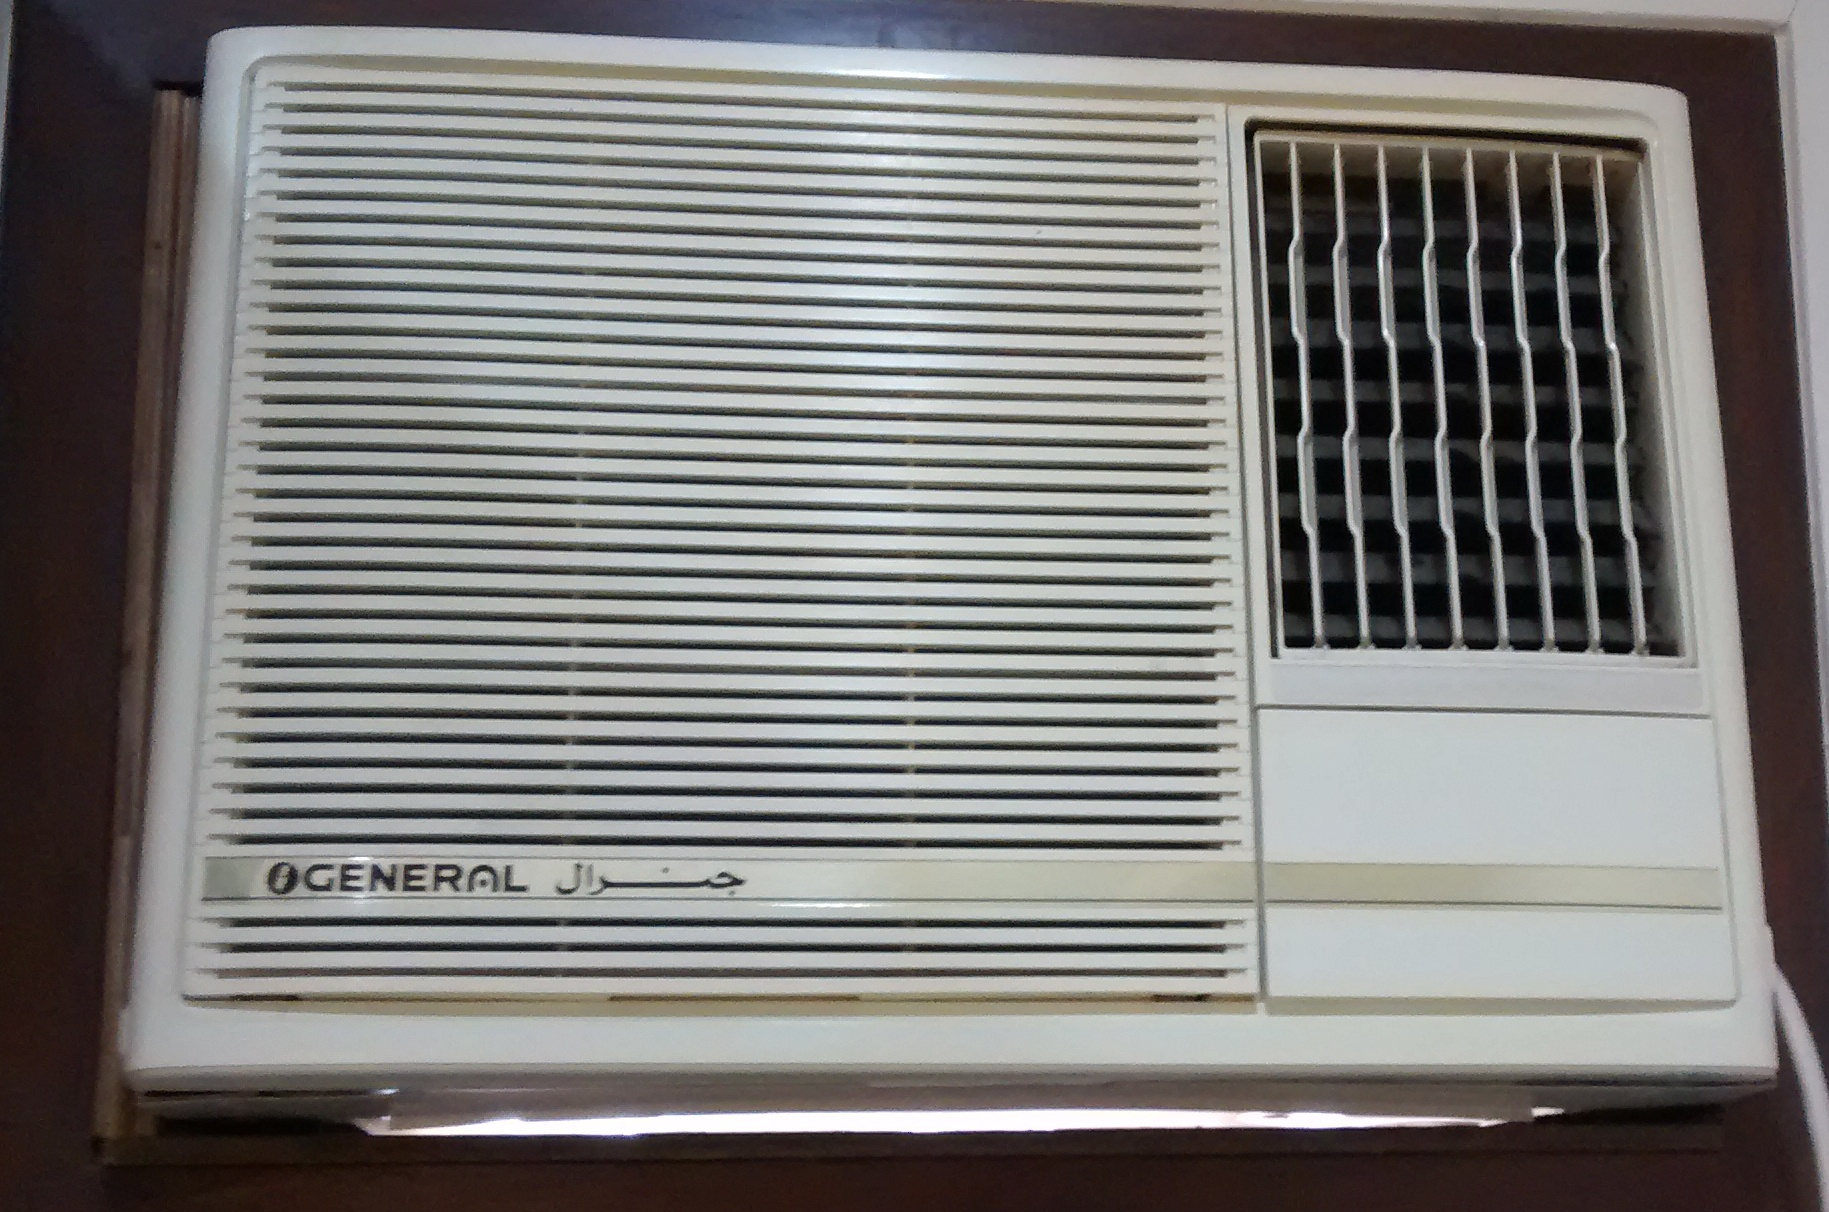 Junk Removal How To Uninstall A Window Air Conditioner In